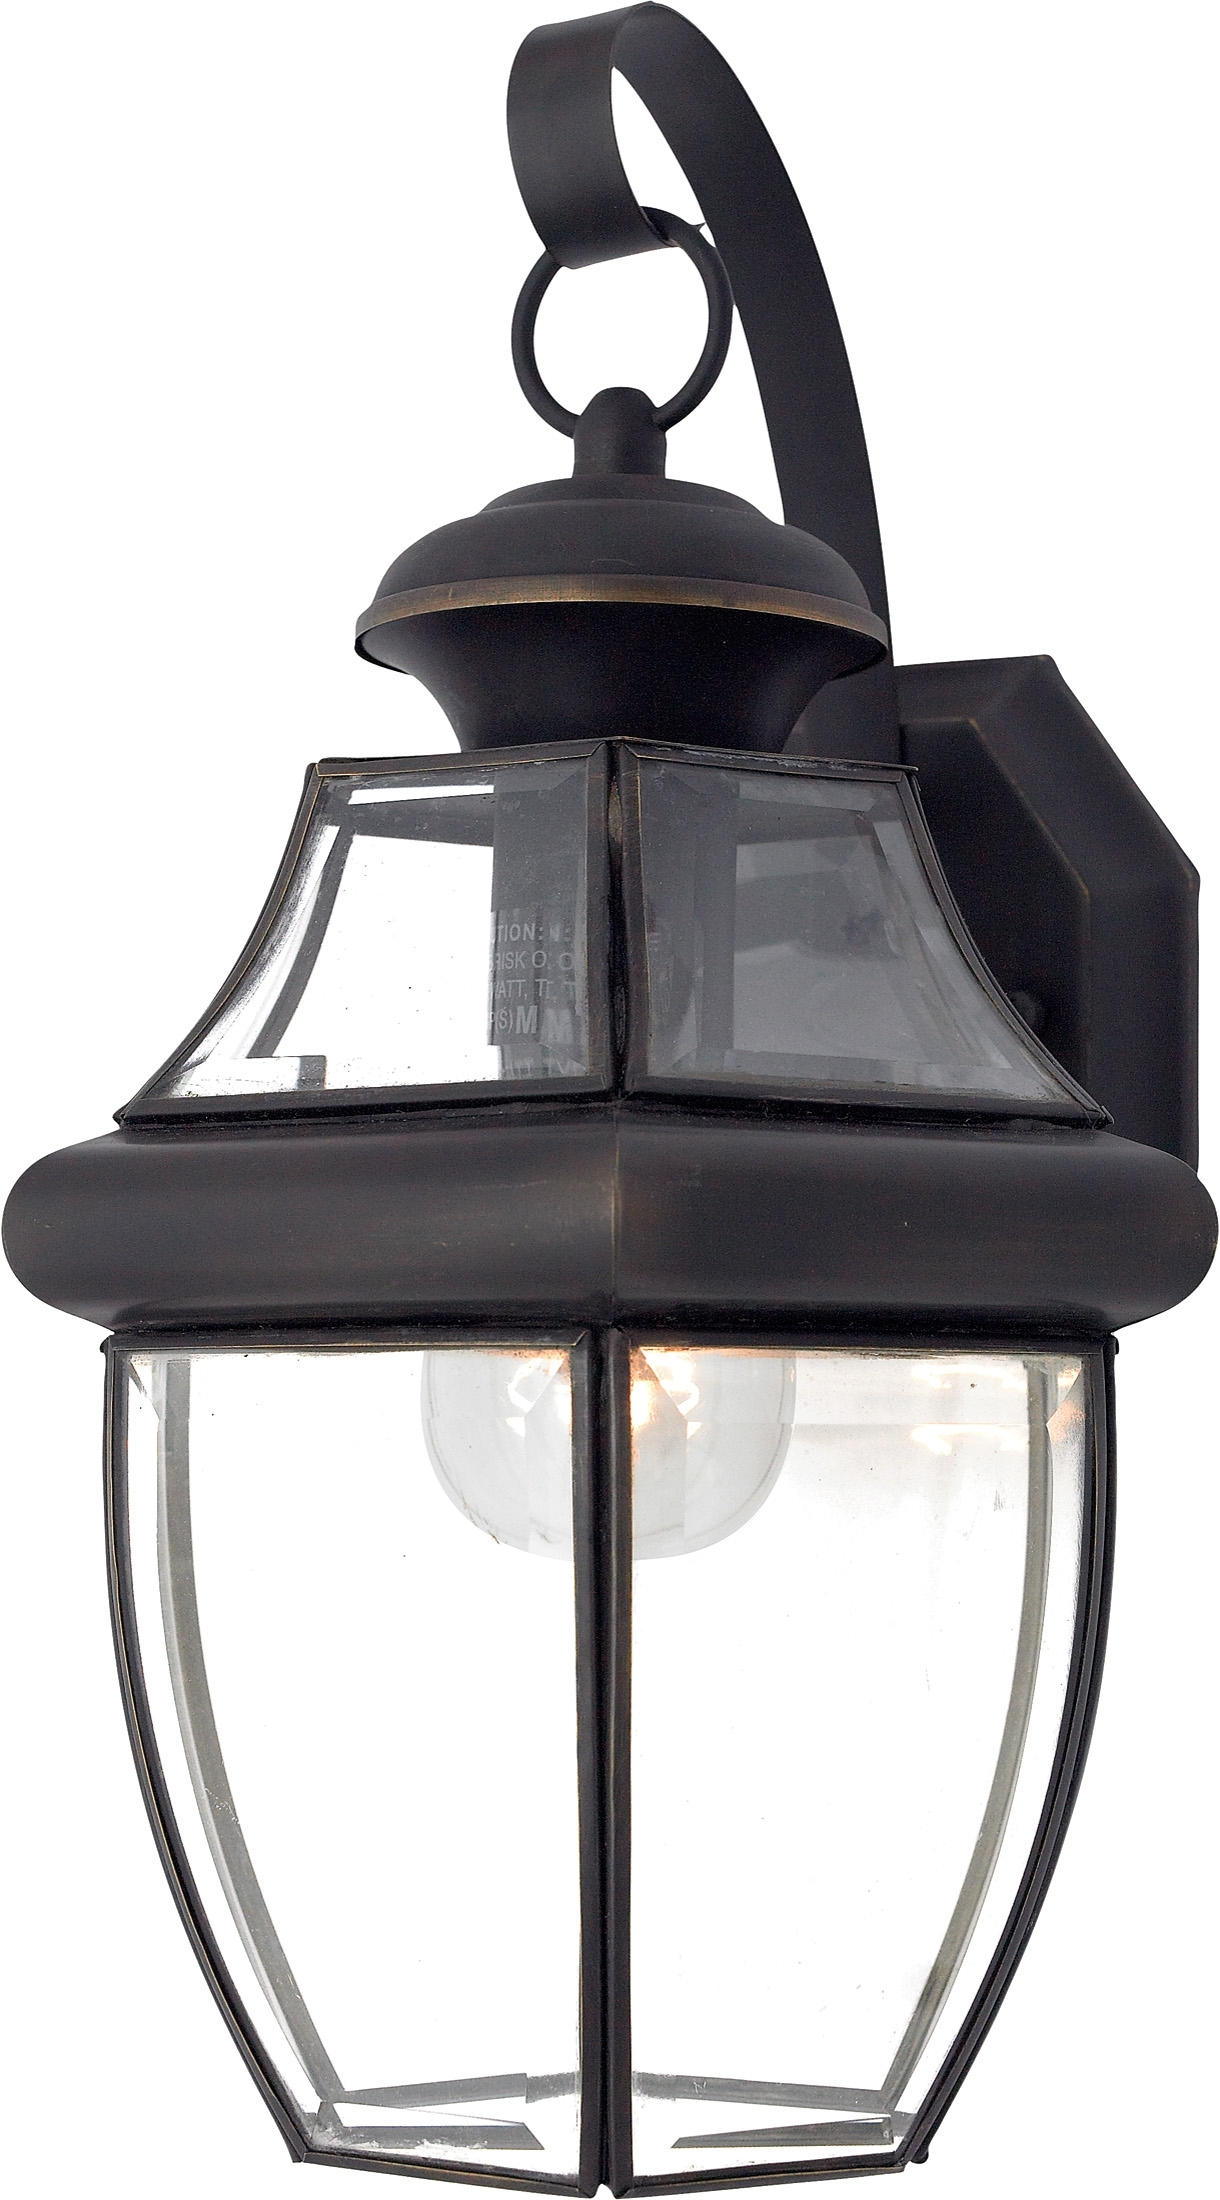 Home Decor + Home Lighting Blog » Blog Archive » Quoizel Lighting Pertaining To Traditional Outdoor Wall Lights (View 13 of 15)